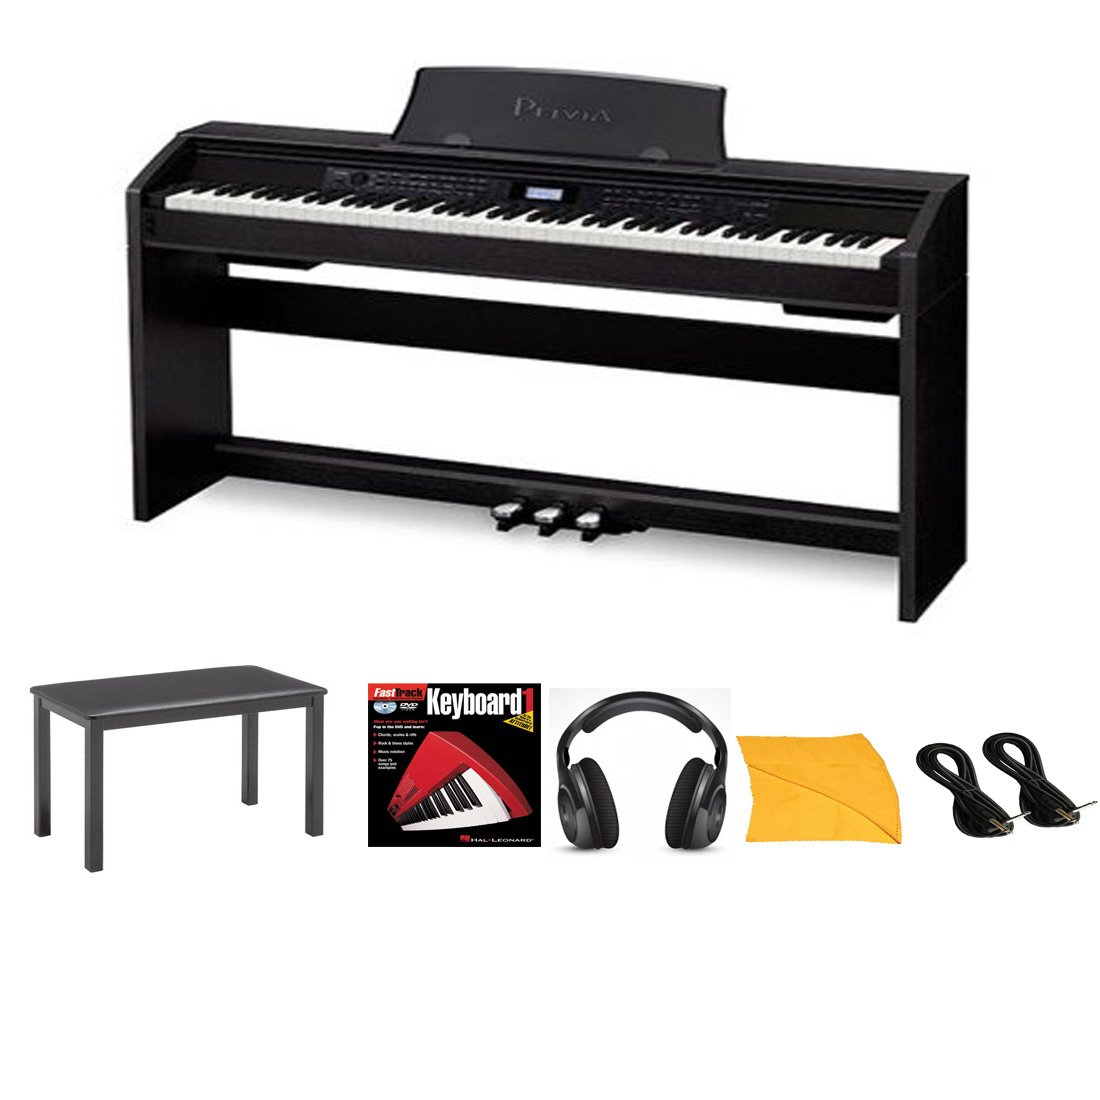 Casio PX780 Privia 88-Key Digital Home Piano in Black with X-Style Adjustable Padded Bench, Music Instruction Book, Stereo Headphone, 2 Instrument Cables and Zorro Sounds Piano Polishing Cloth